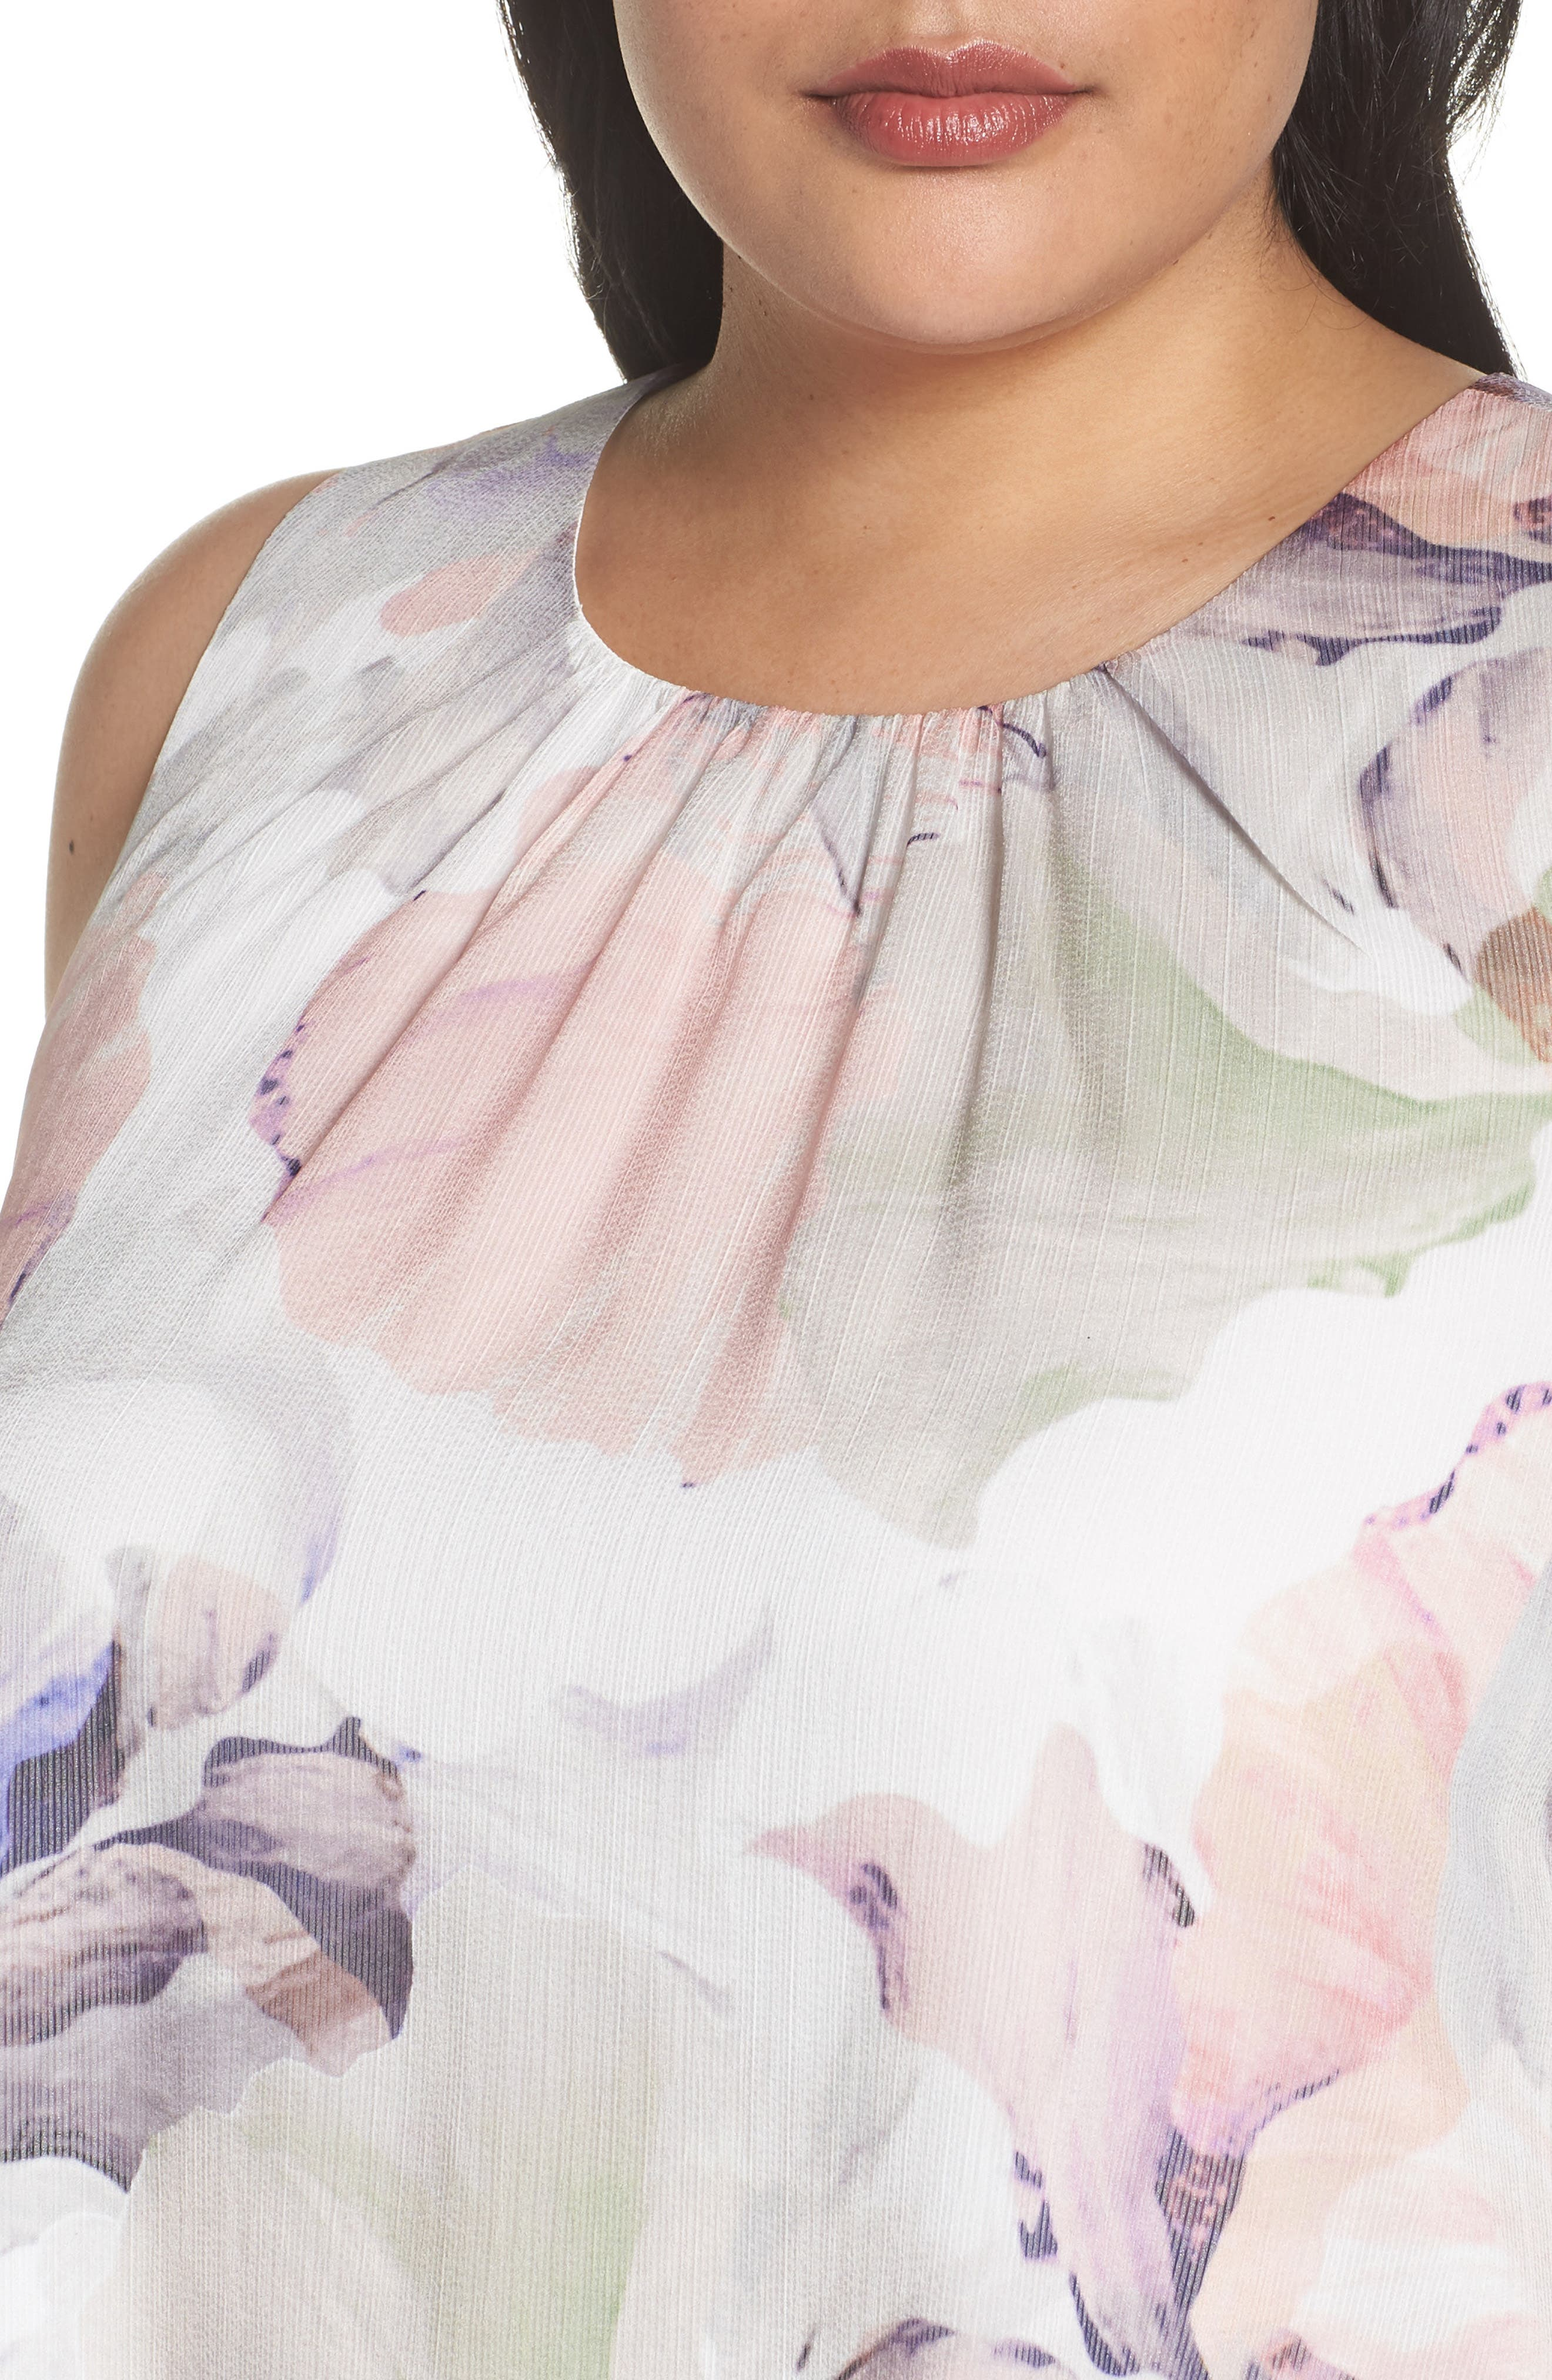 Diffused Blooms Blouse,                             Alternate thumbnail 4, color,                             903